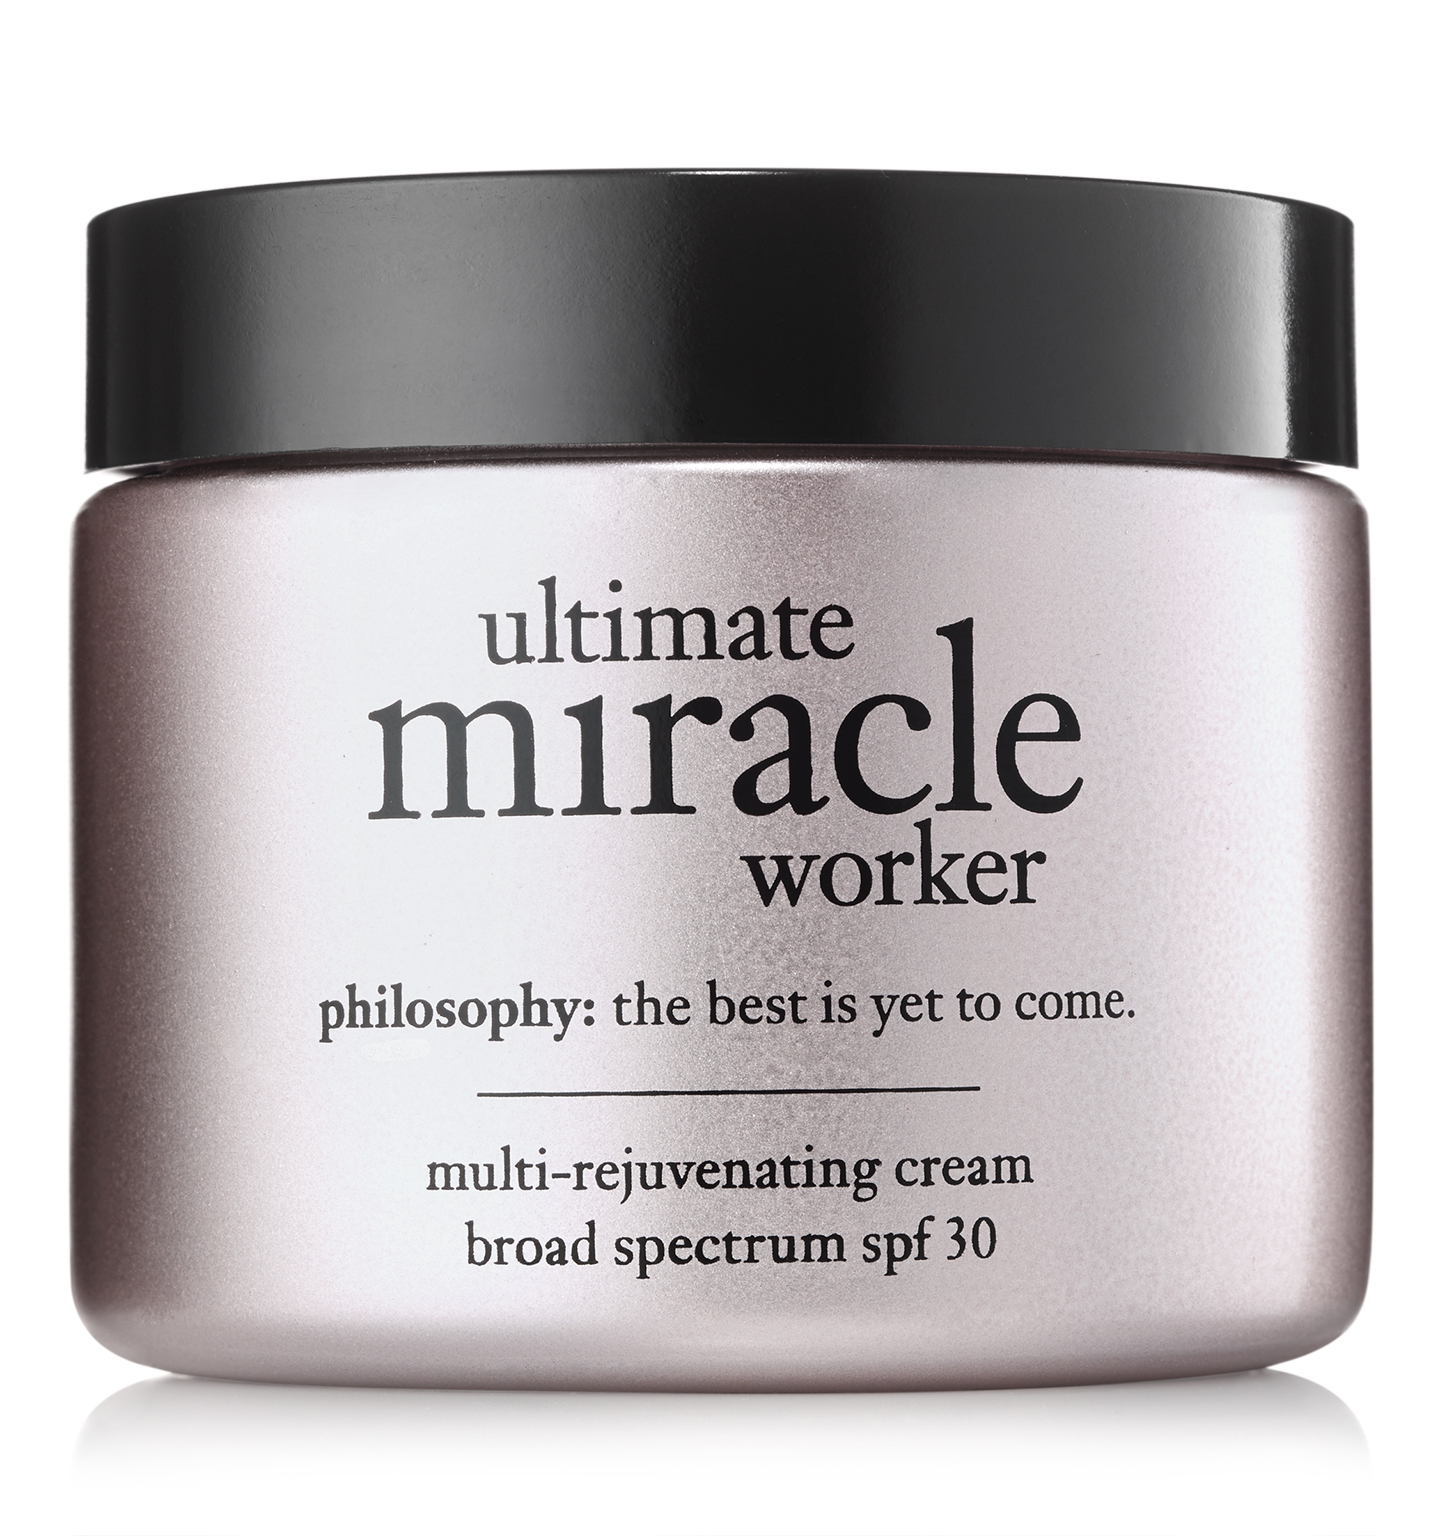 philosophy, ultimate miracle worker spf 30 2oz. moisturizer